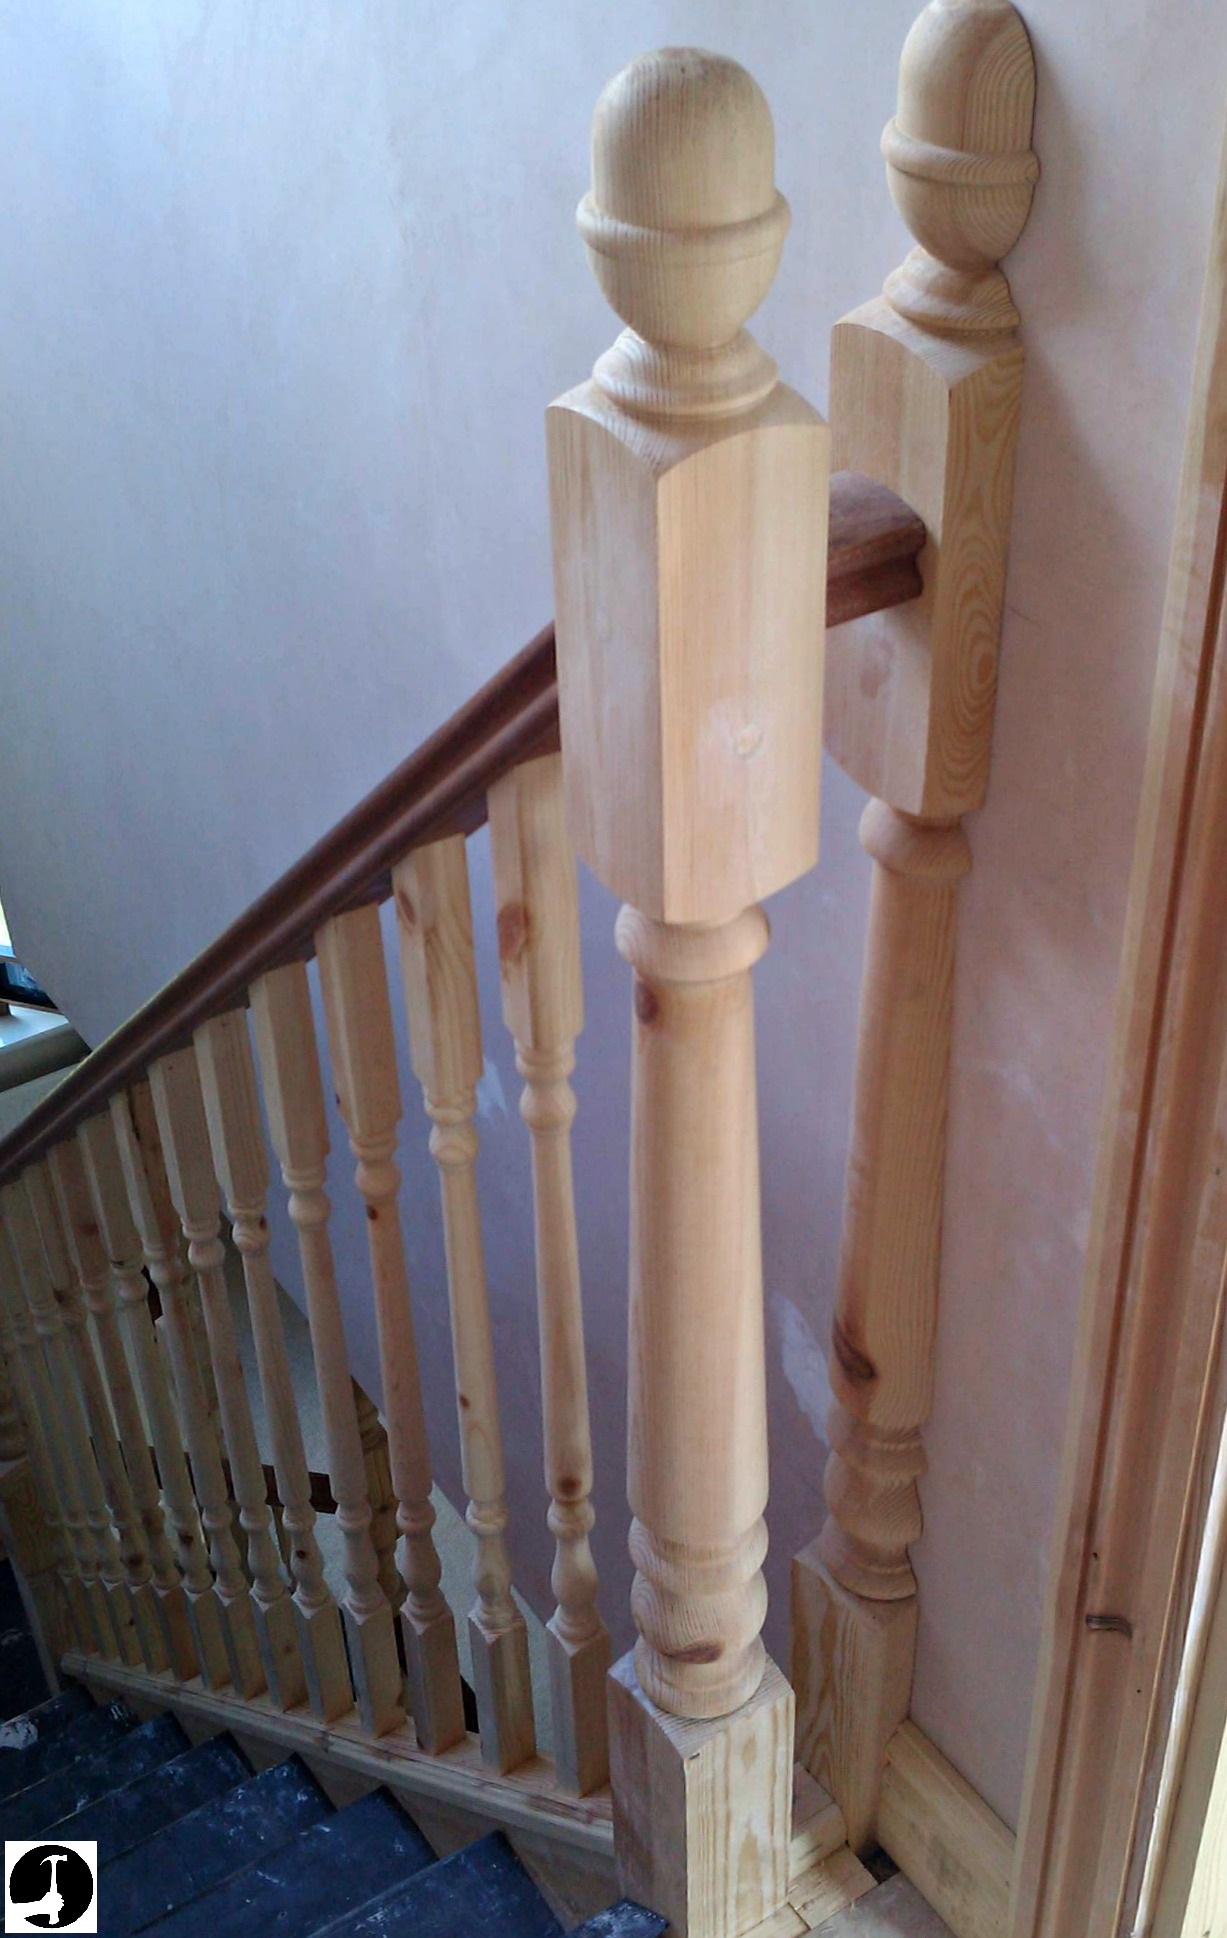 Fitting A Half Newel Post To The Wall